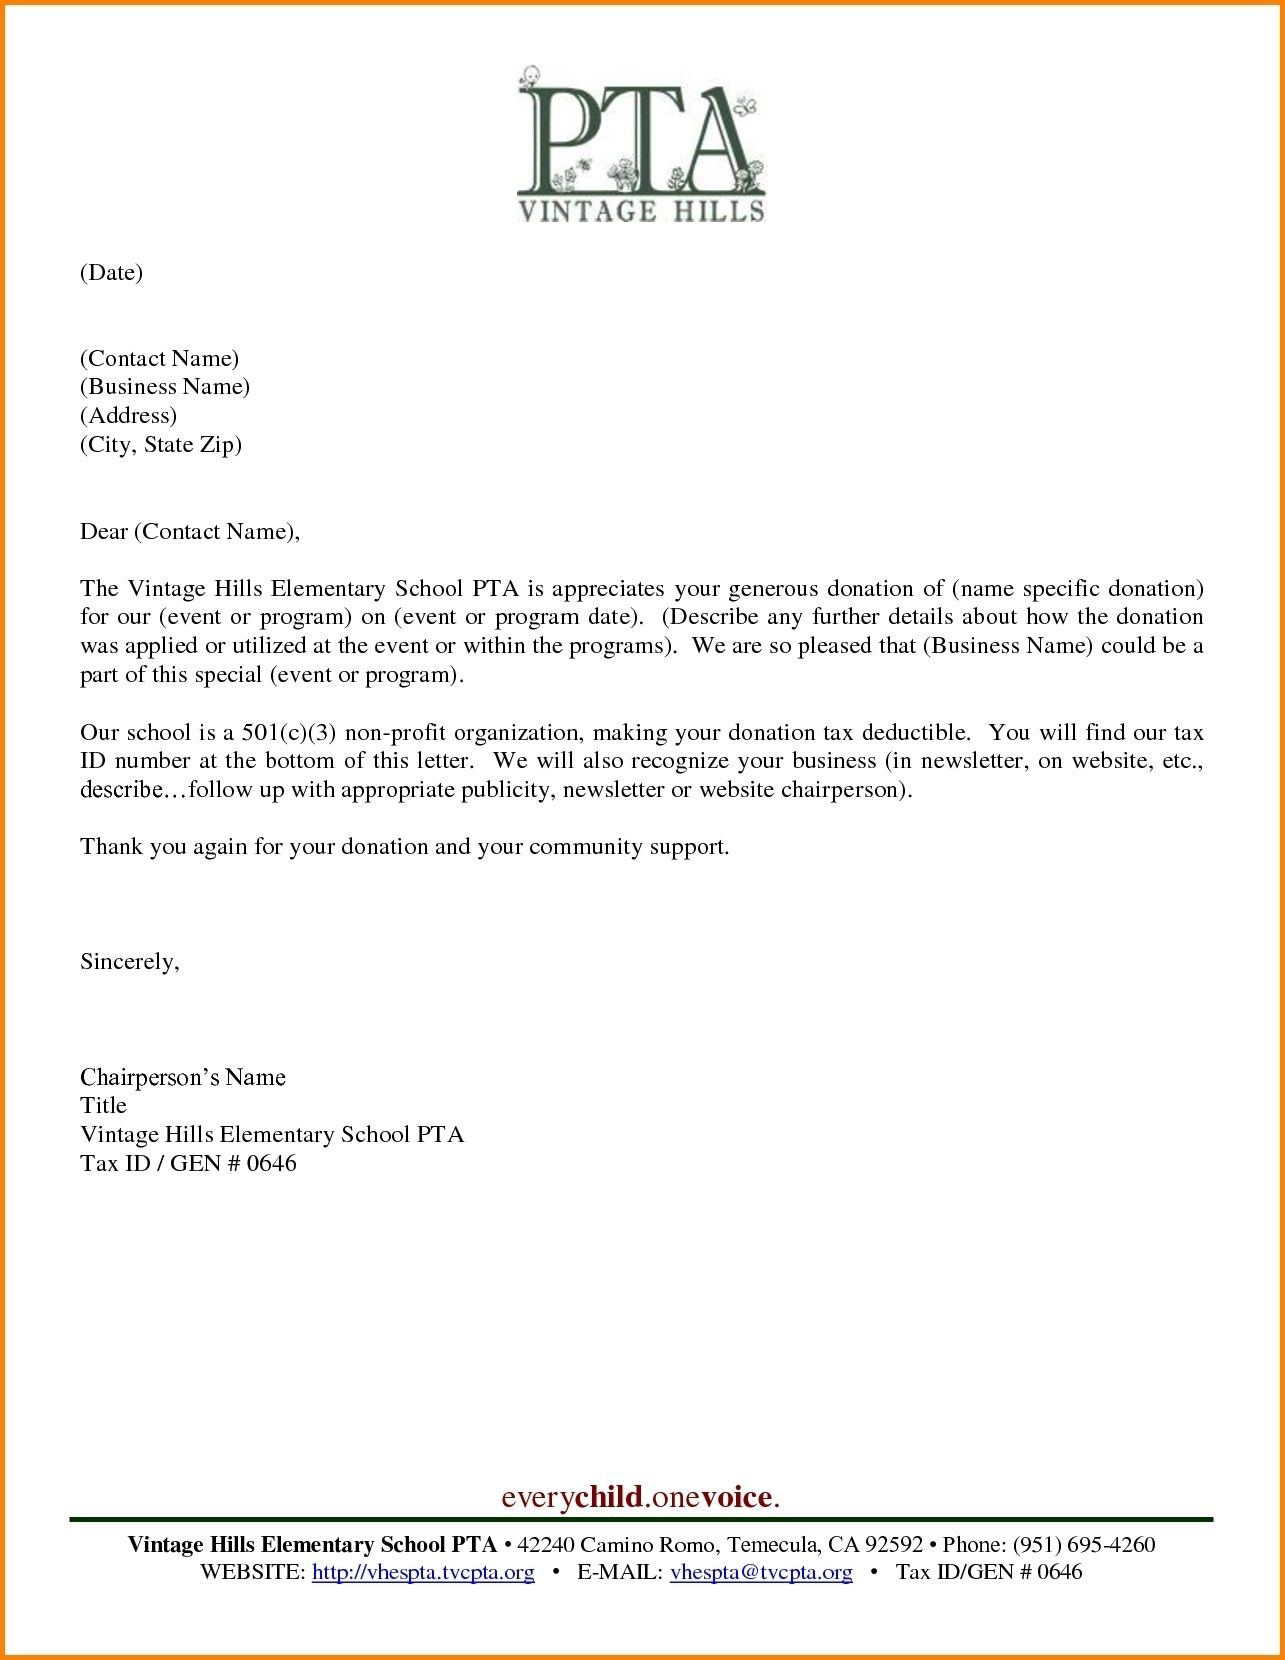 business letter template image by jessica worch on pfa free download resume format word document first year teacher examples samples 2019